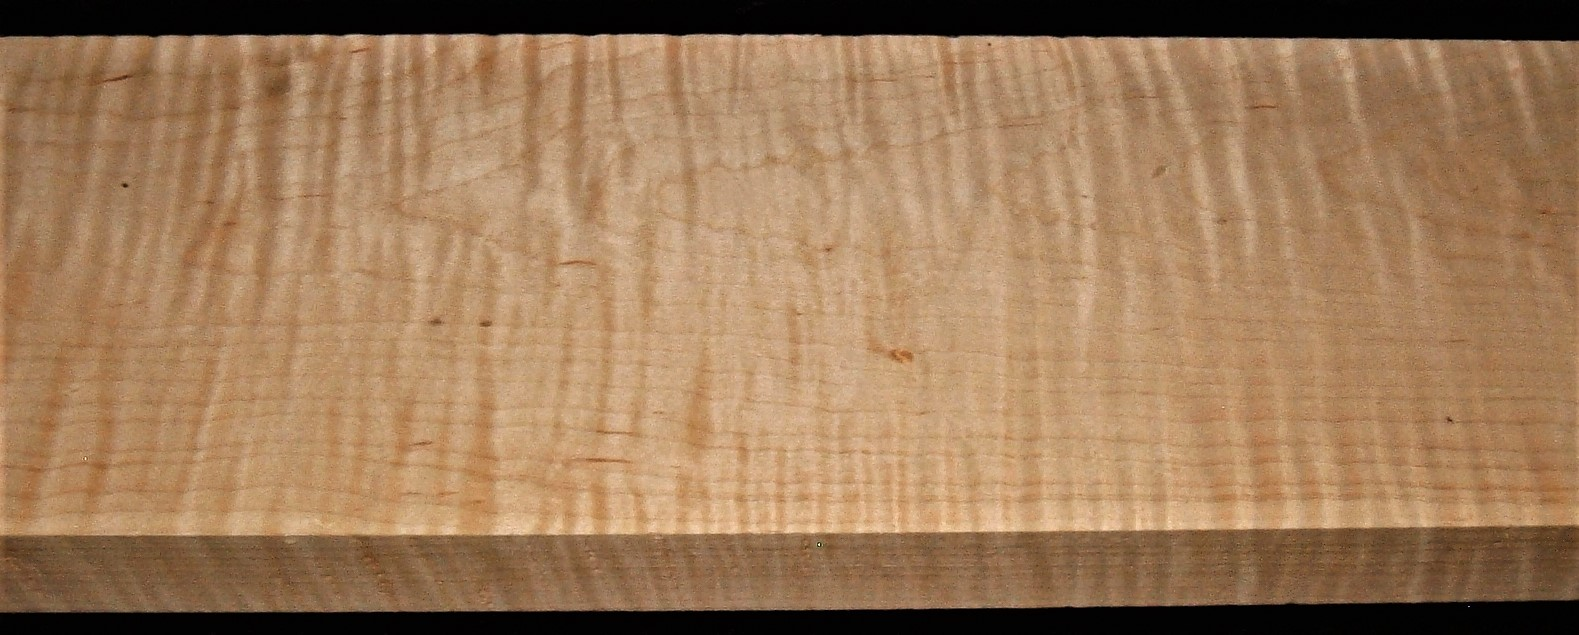 M2008-659JJ, 1-3/4x7-1/2x45, Curly Tiger Maple